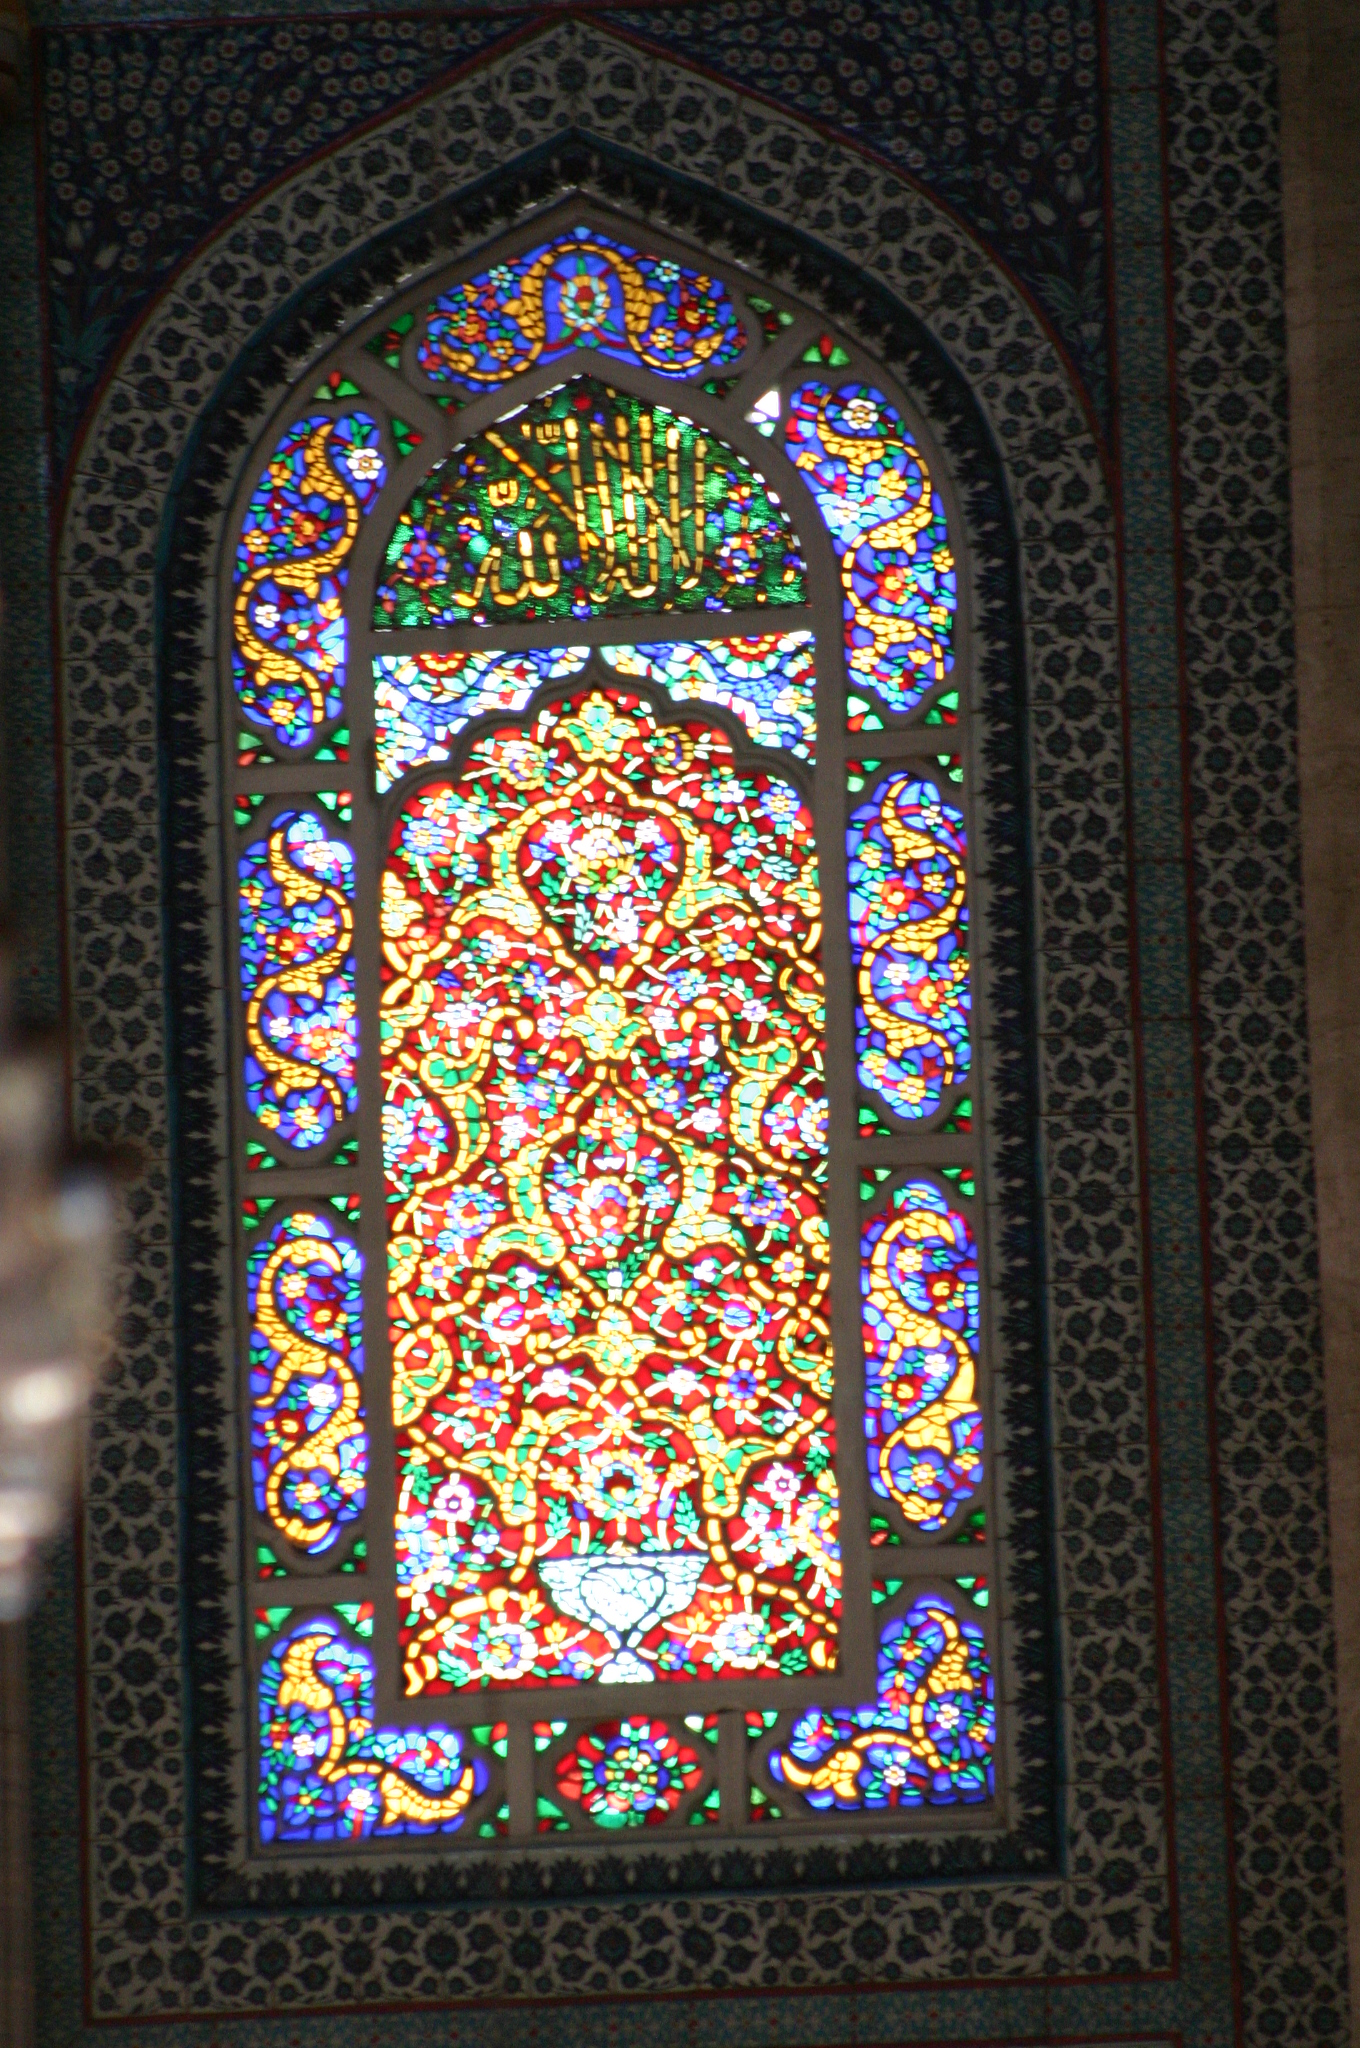 File:Stained glass window at Süleymaniye Mosque.jpg ...